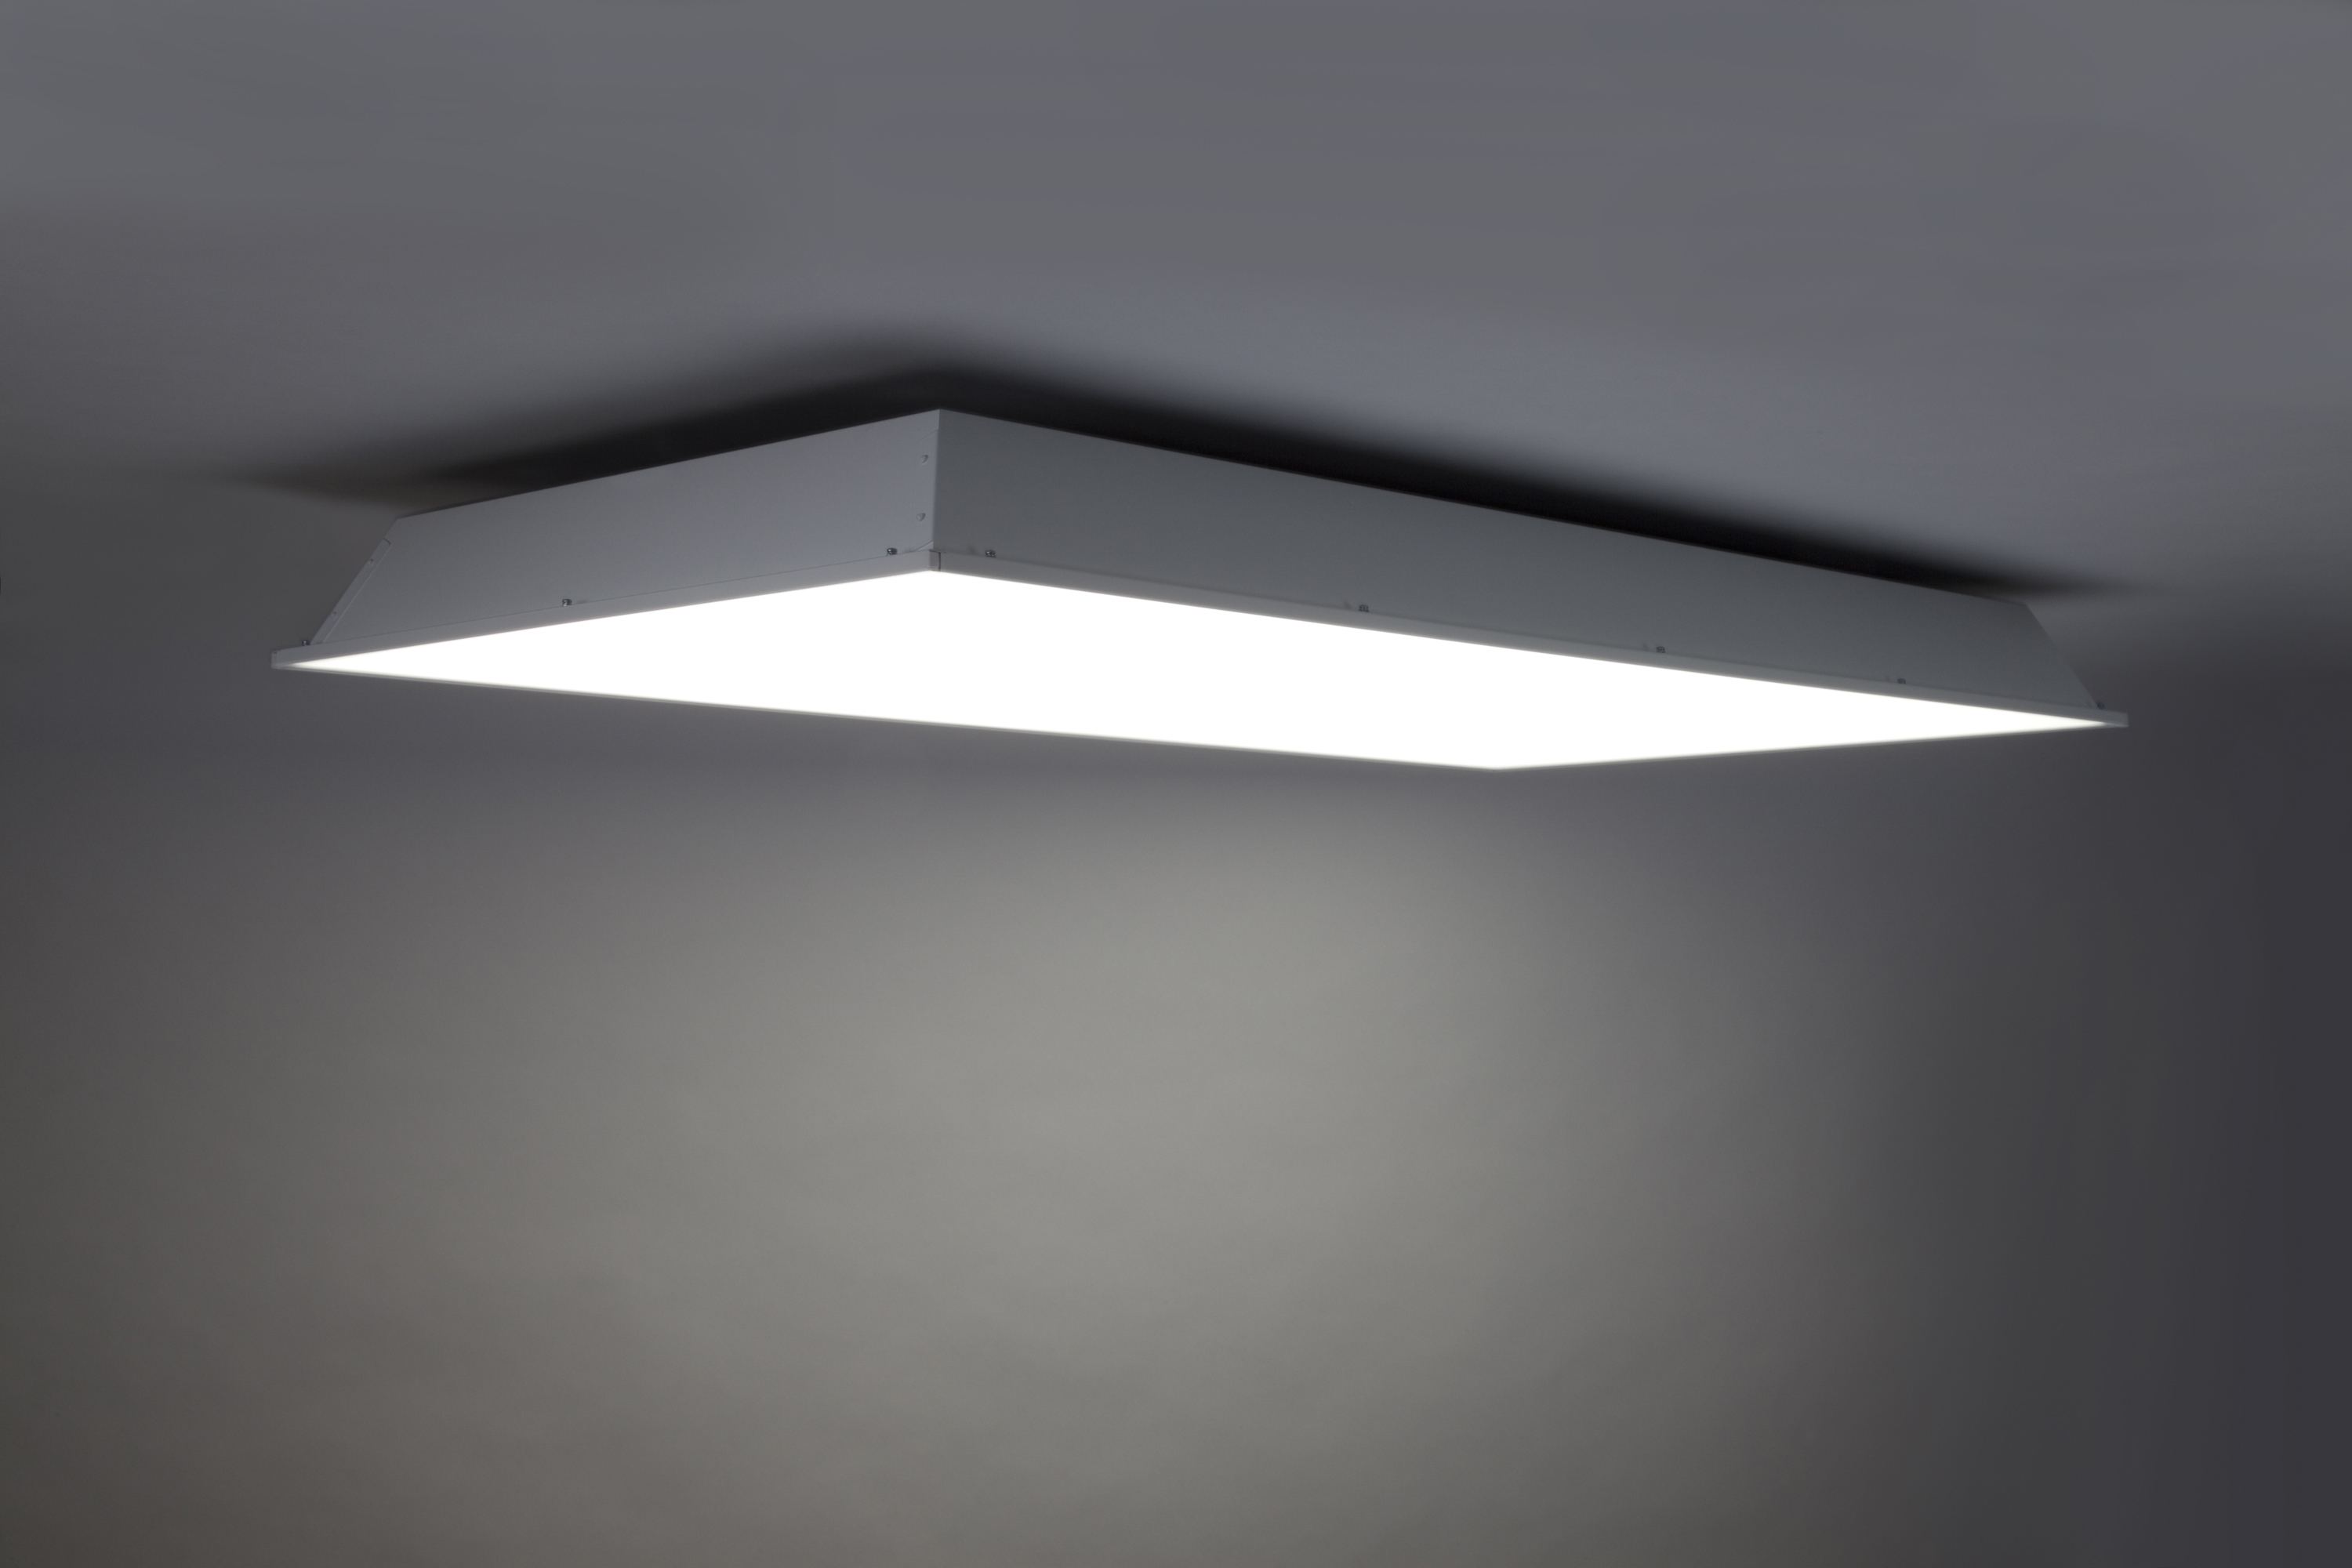 Led Ceiling Lights Stars – Led Ceiling Lights Advantages And Where For Outdoor Led Ceiling Lights (View 3 of 15)